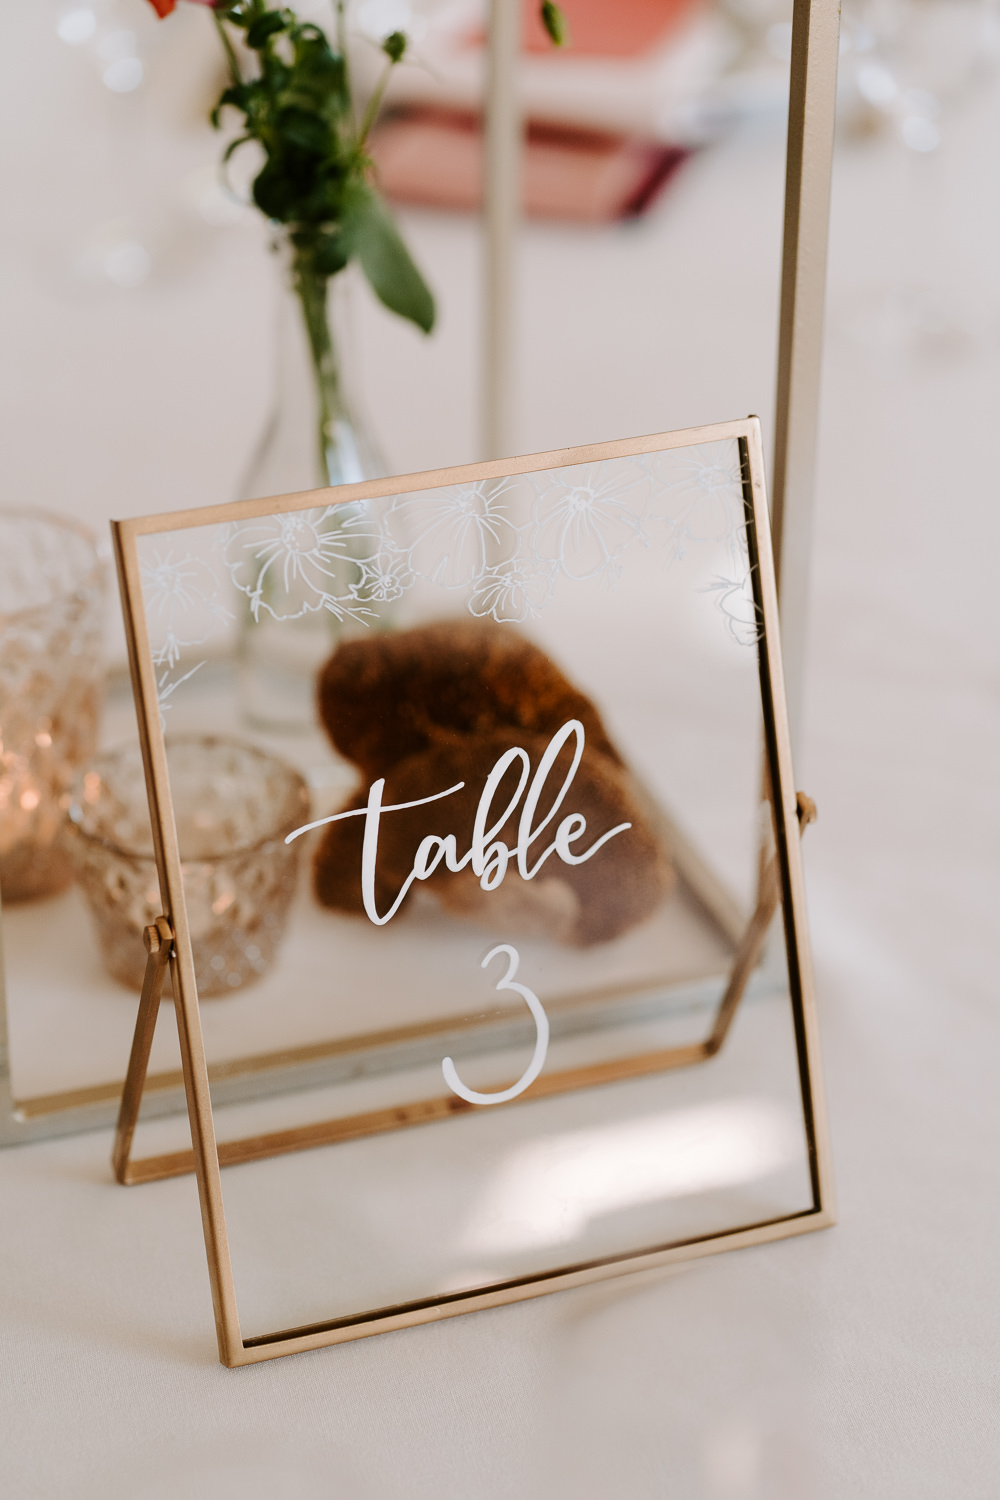 Glass Clear Perspex Acrylic Table Number Contemporary Wedding Ideas Chloe Ely Photography